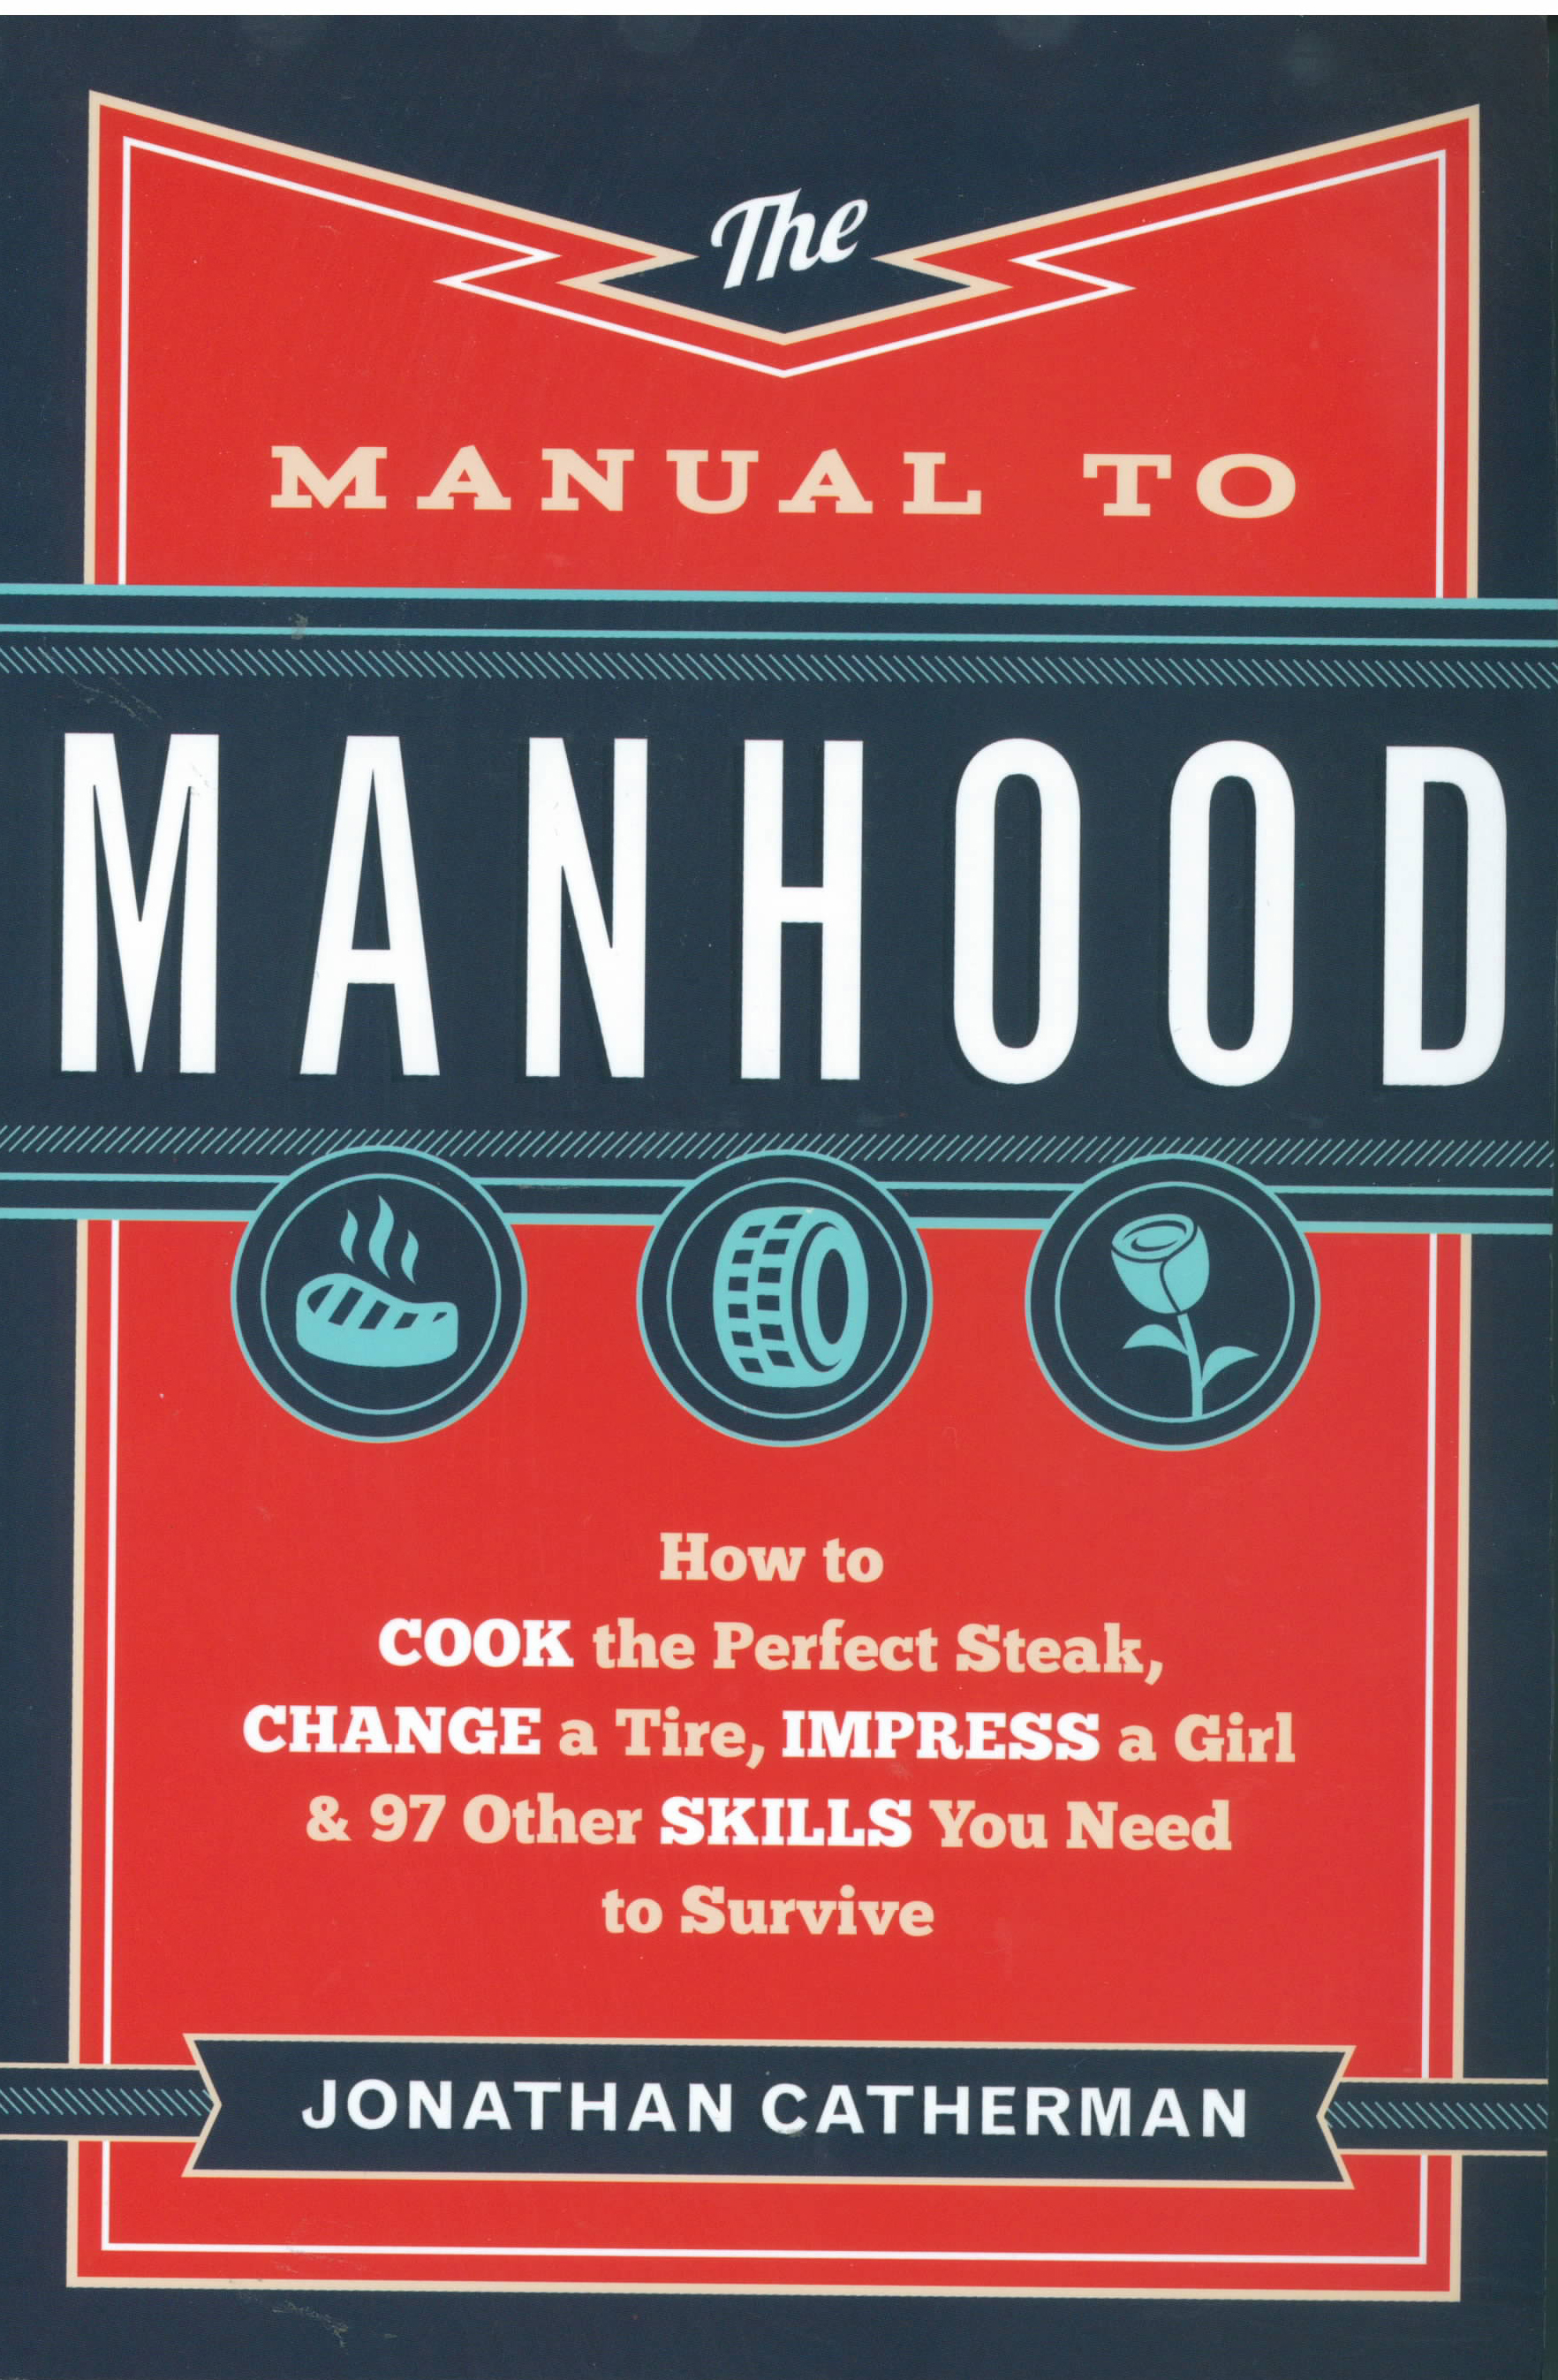 The Manual to Manhood: How to Cook the Perfect Steak, Change a Tire, Impress a Girl & 97 Other Skills You Need to Survive by Jonathan Catherman 108-9780800722296